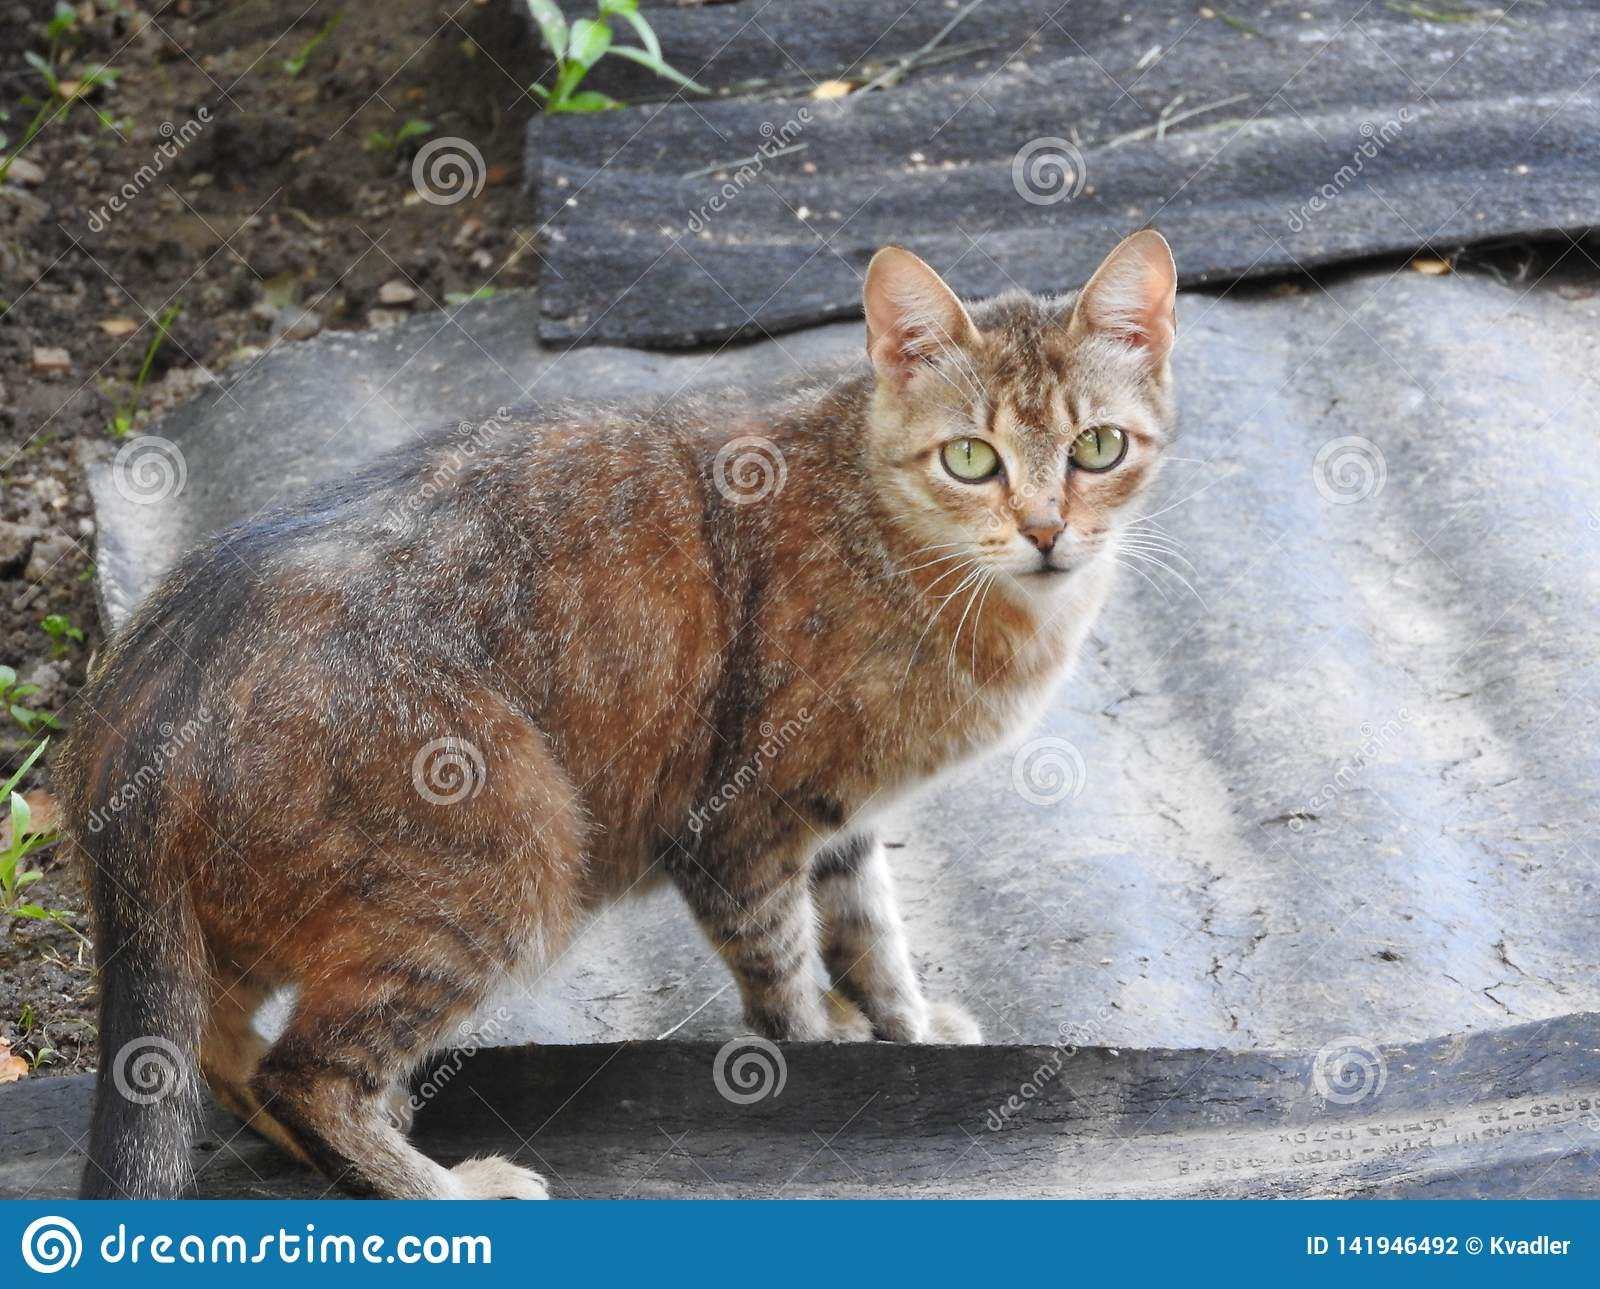 Cat on the background of the rural natural environment on a summer day